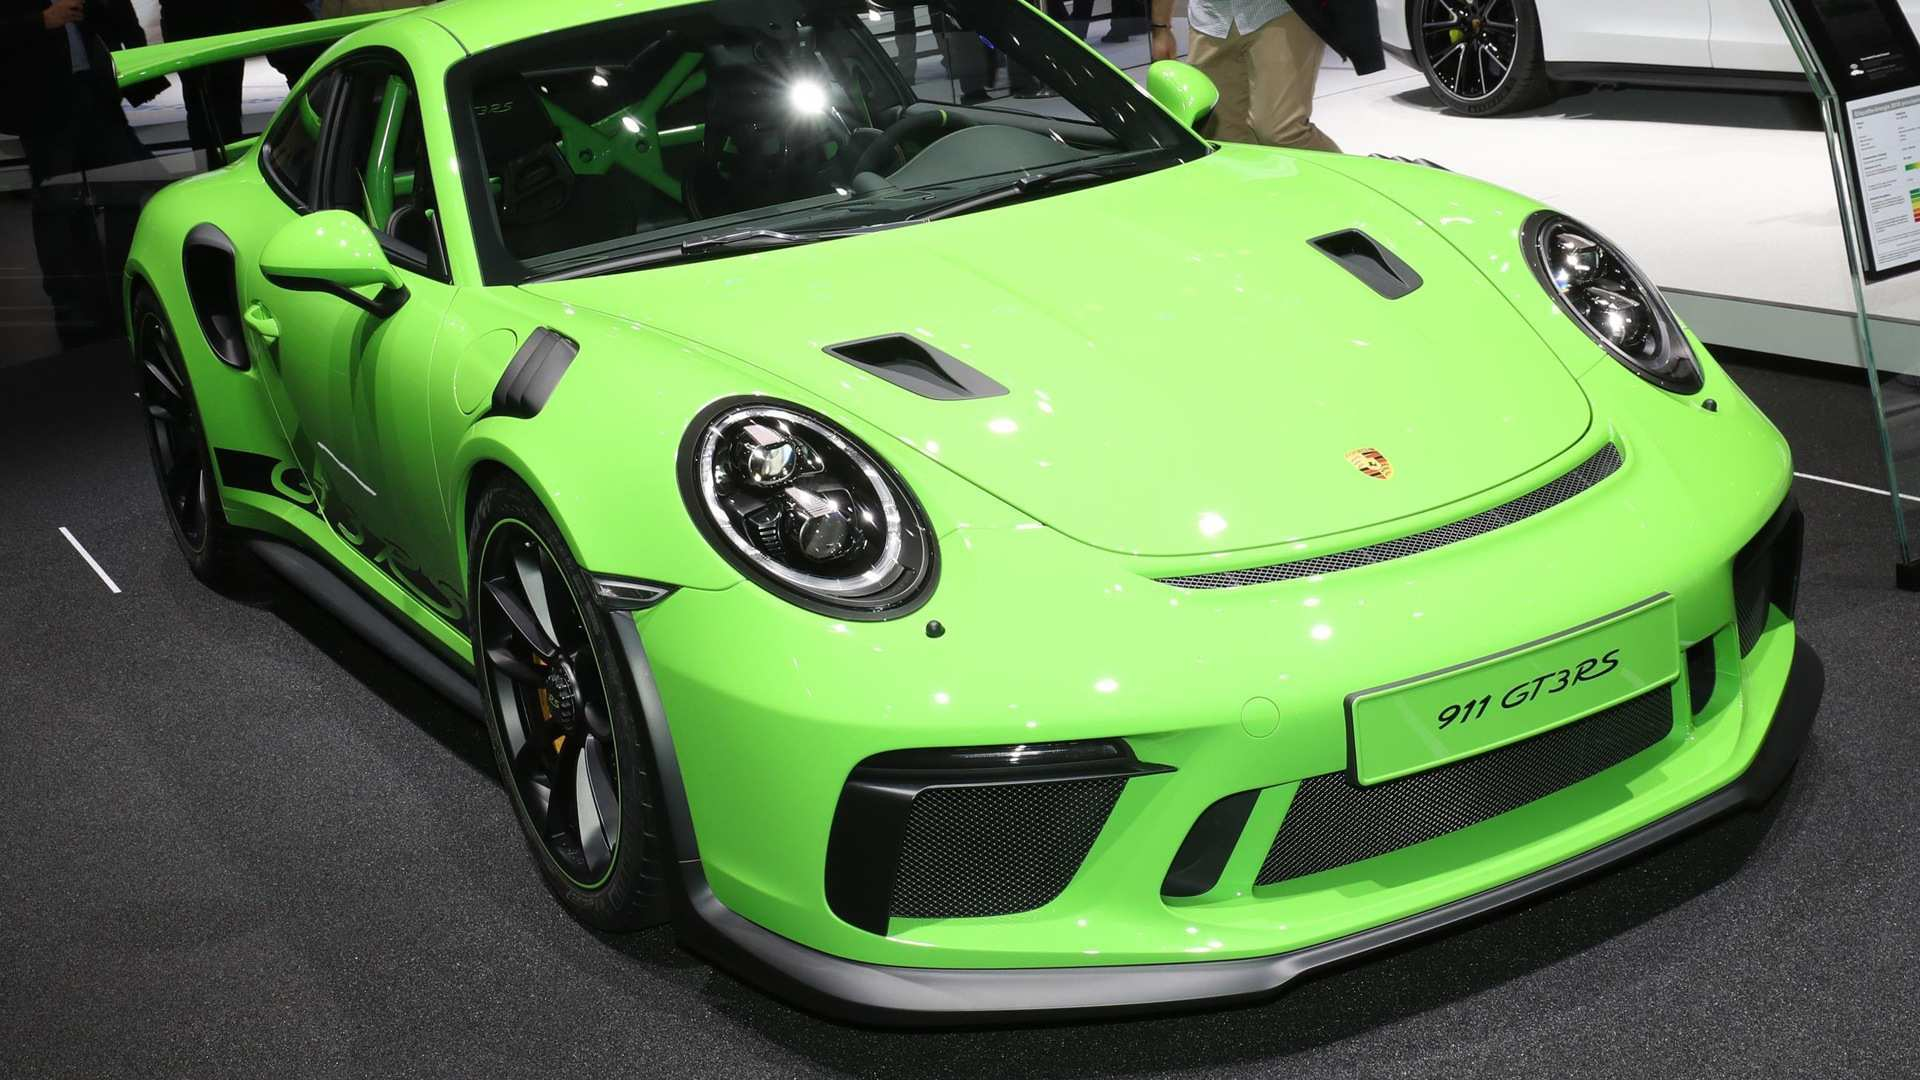 26 All New 2019 Porsche Gt3 Rs Prices by 2019 Porsche Gt3 Rs